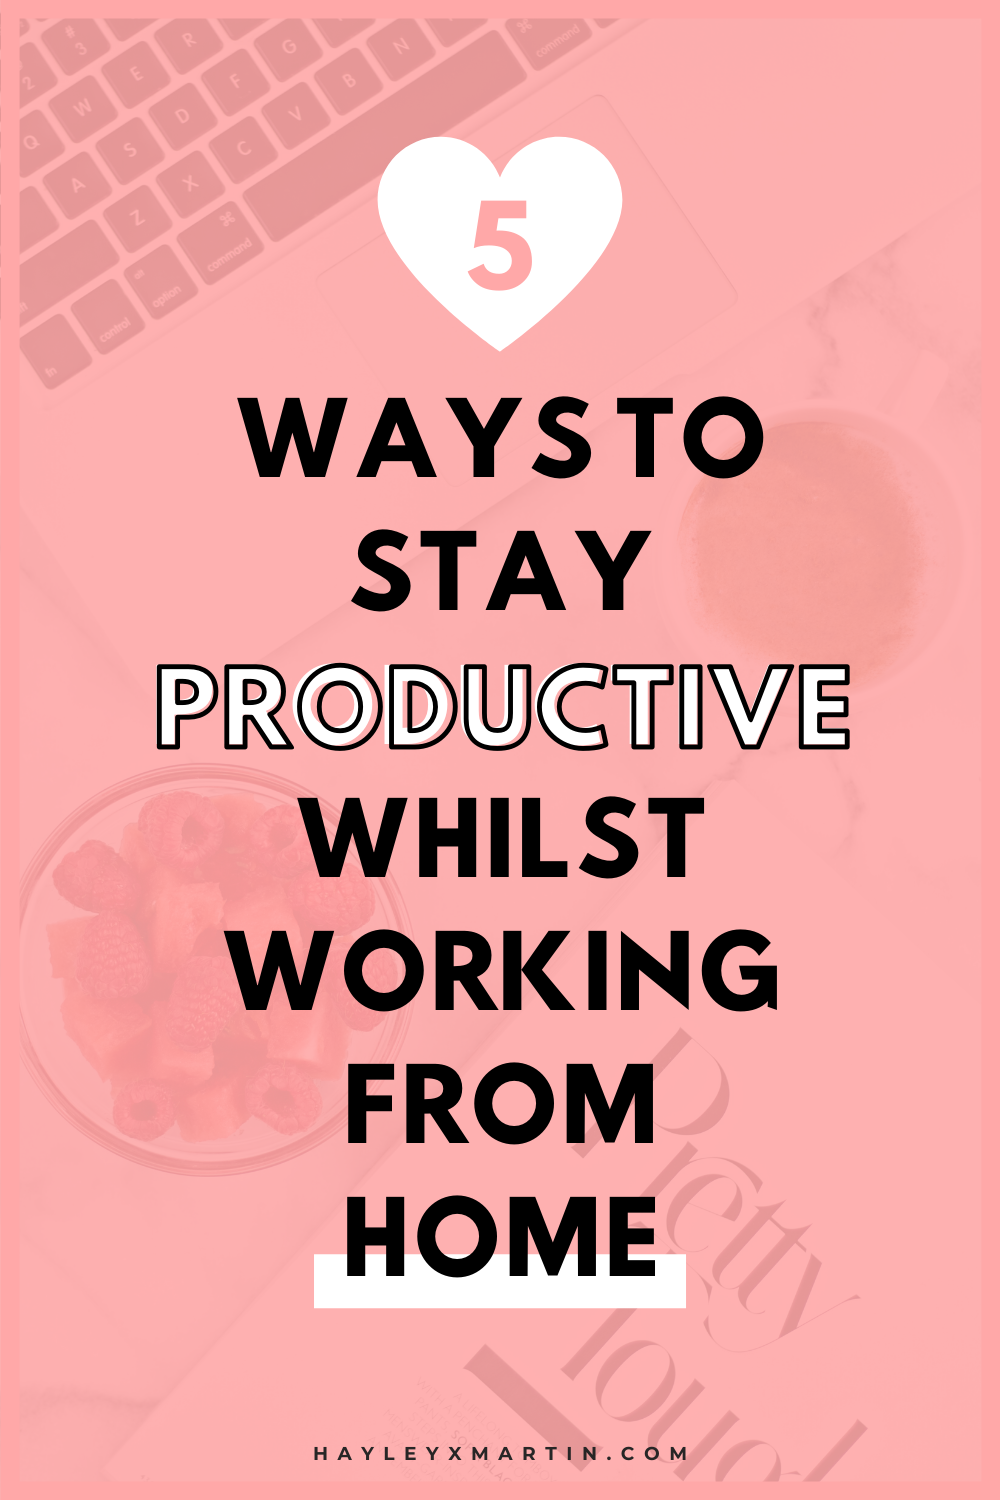 5 WAYS TO STAY PRODUCTIVE WHILST WORKING FROM HOME | HAYLEYXMARTIN